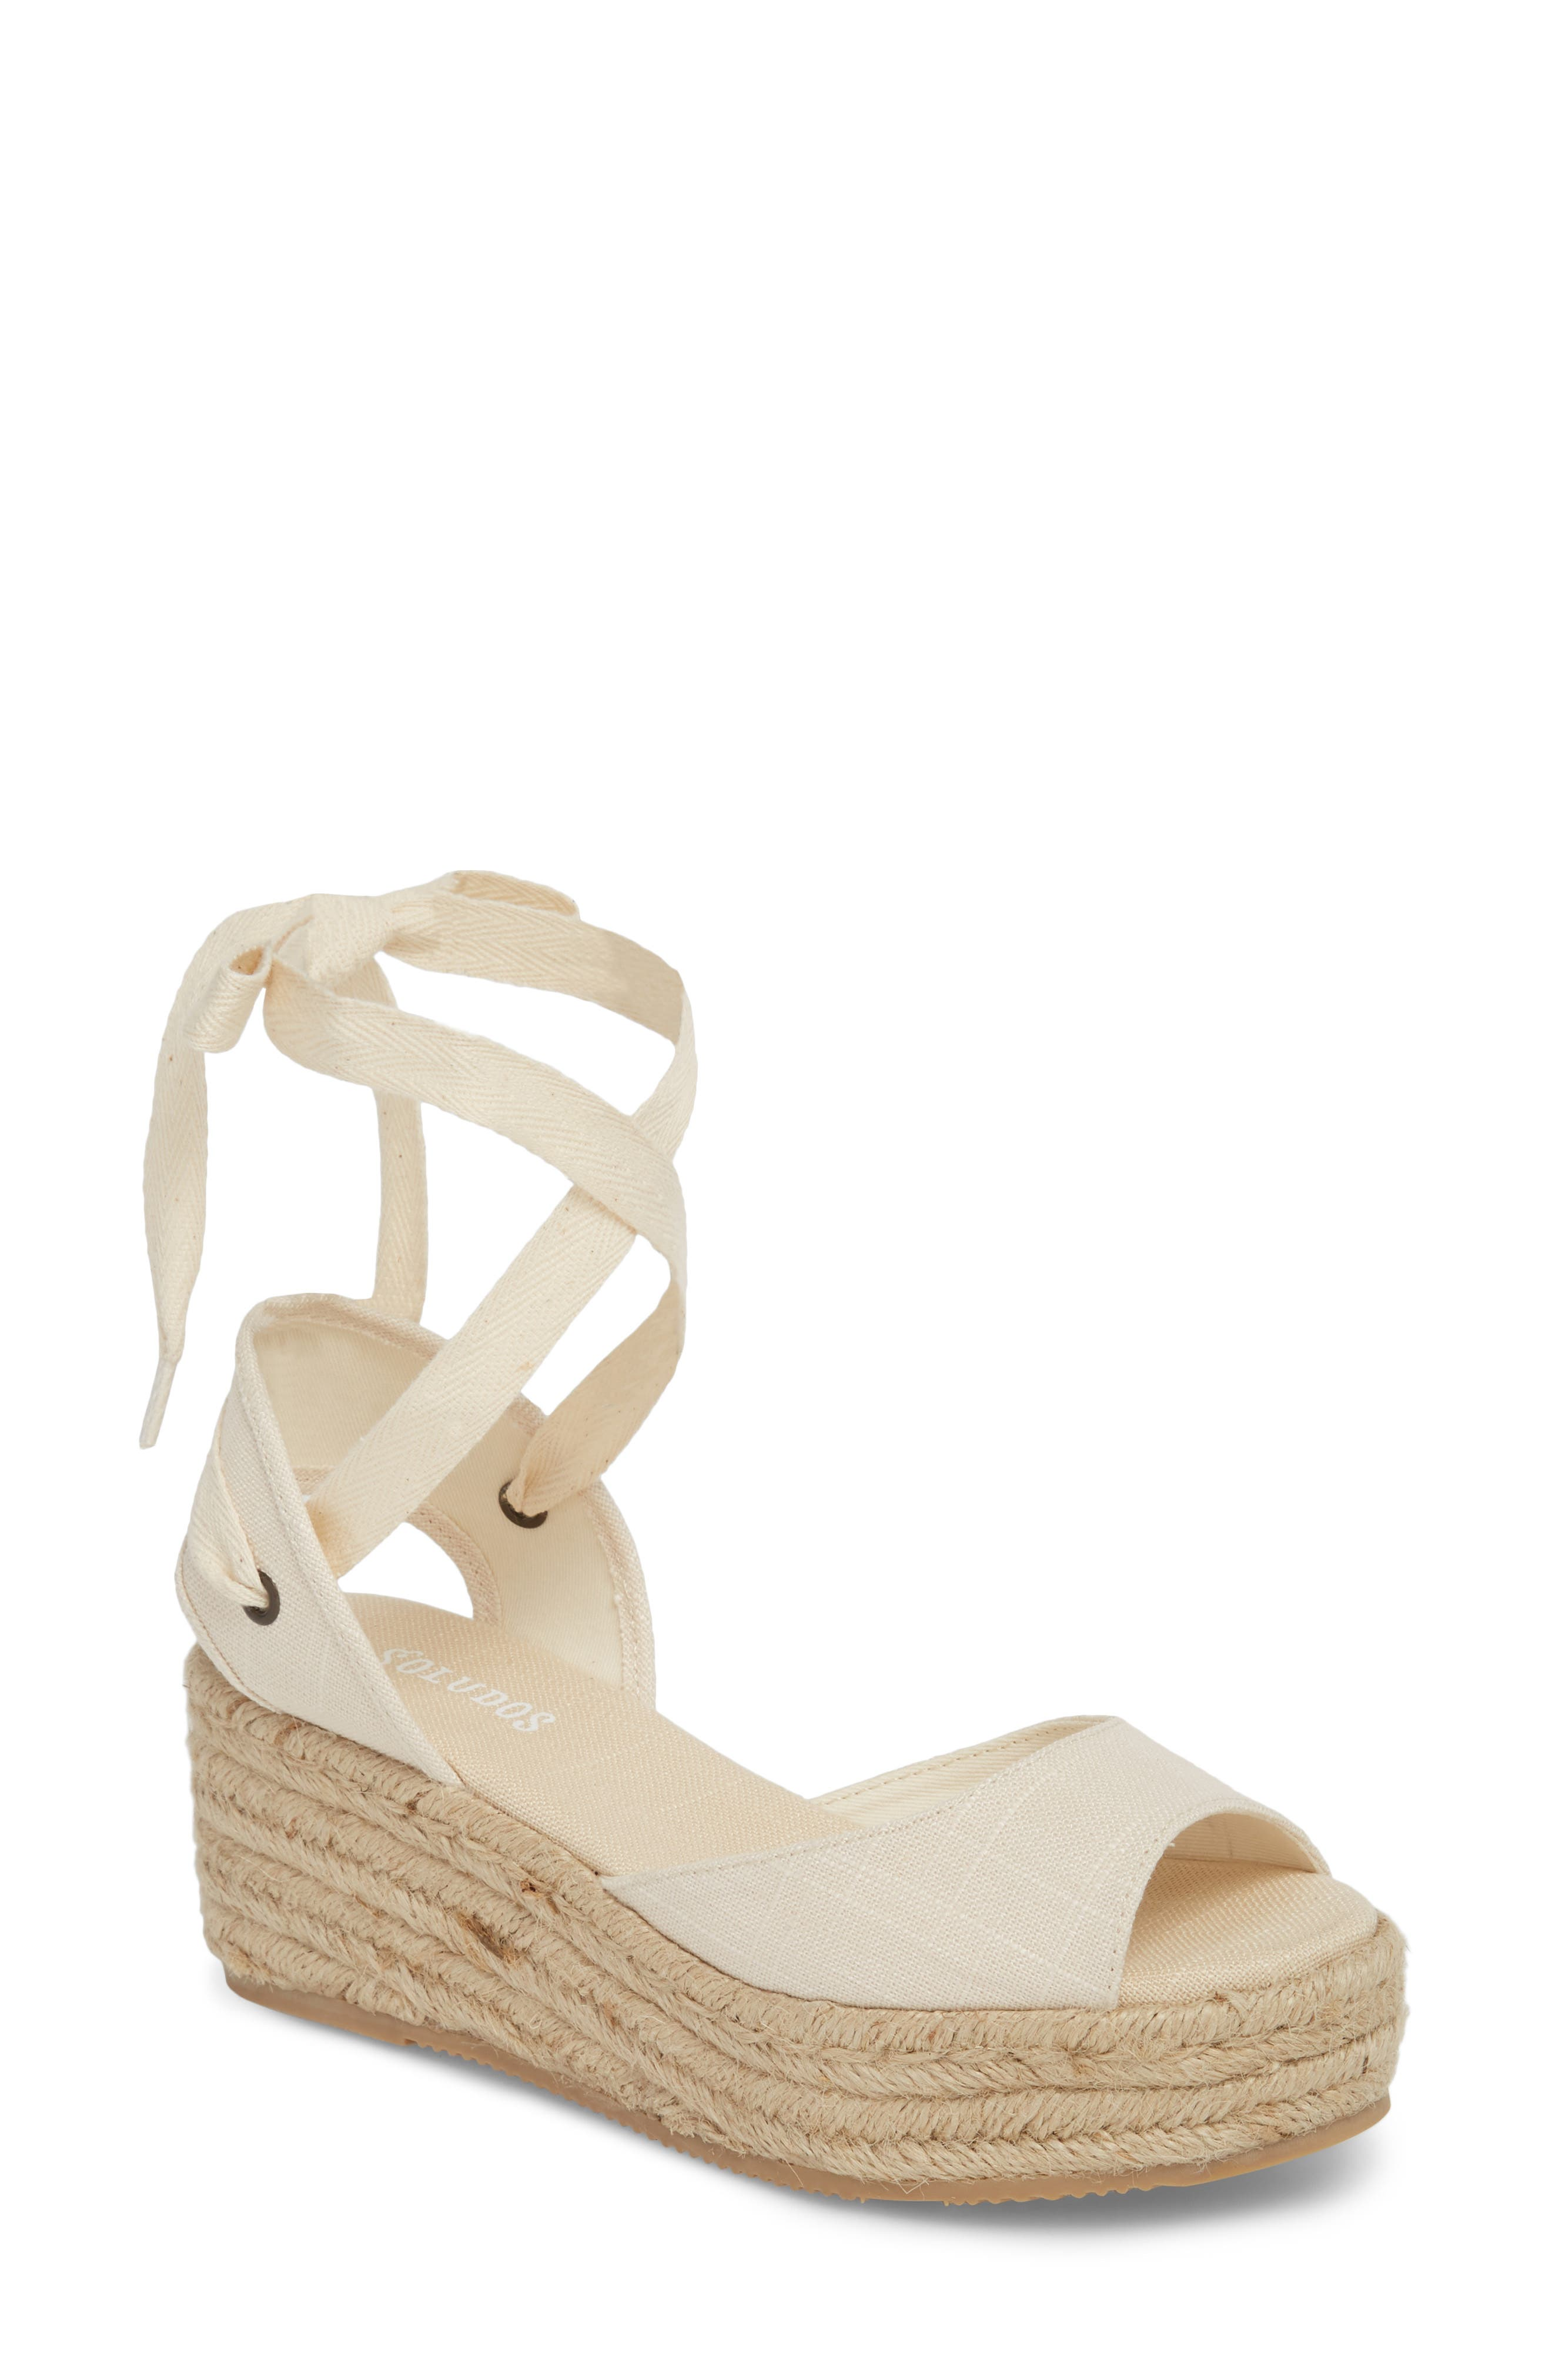 SOLUDOS, Espadrille Platform Sandal, Main thumbnail 1, color, BLUSH FABRIC